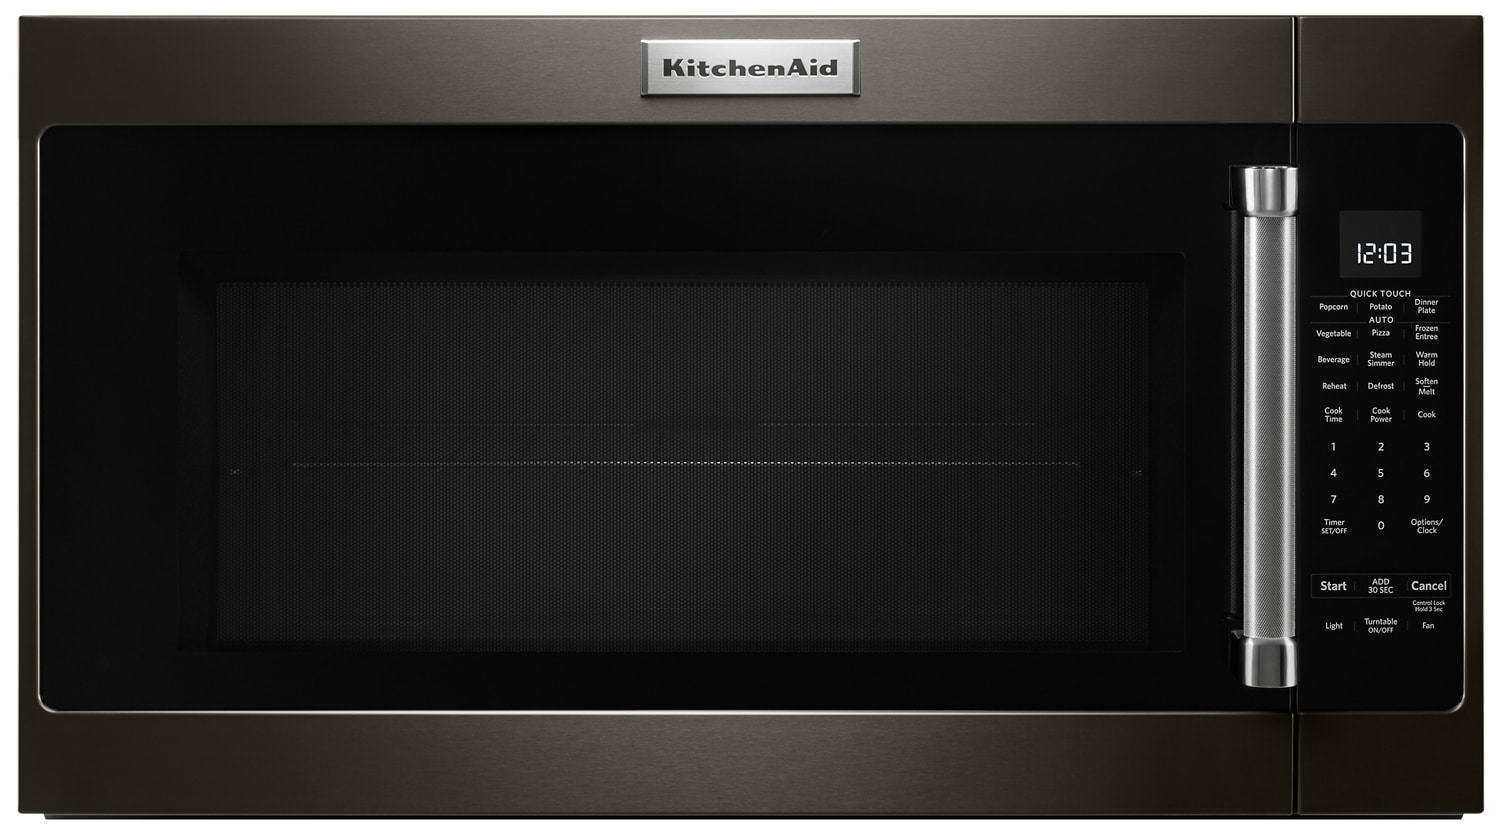 KitchenAid 2.0 Cu. Ft. Over-the-Range Microwave – YKMHS120EBS